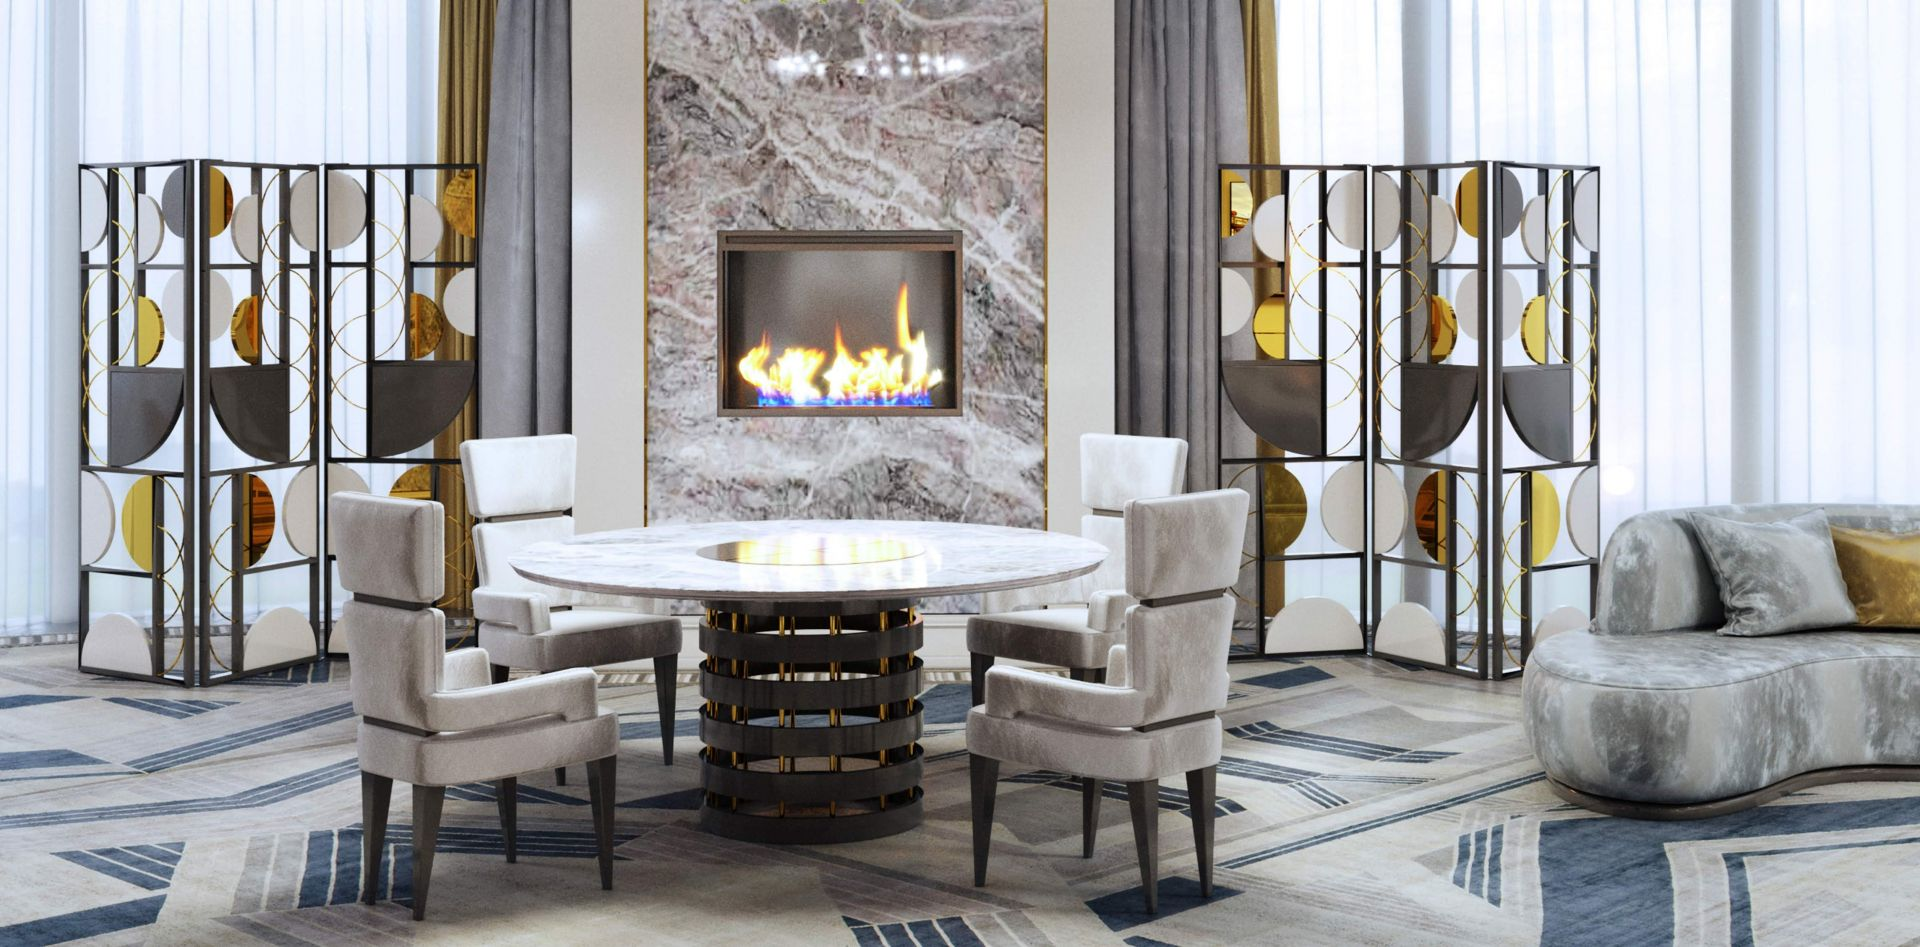 Fireplace in a modern interior